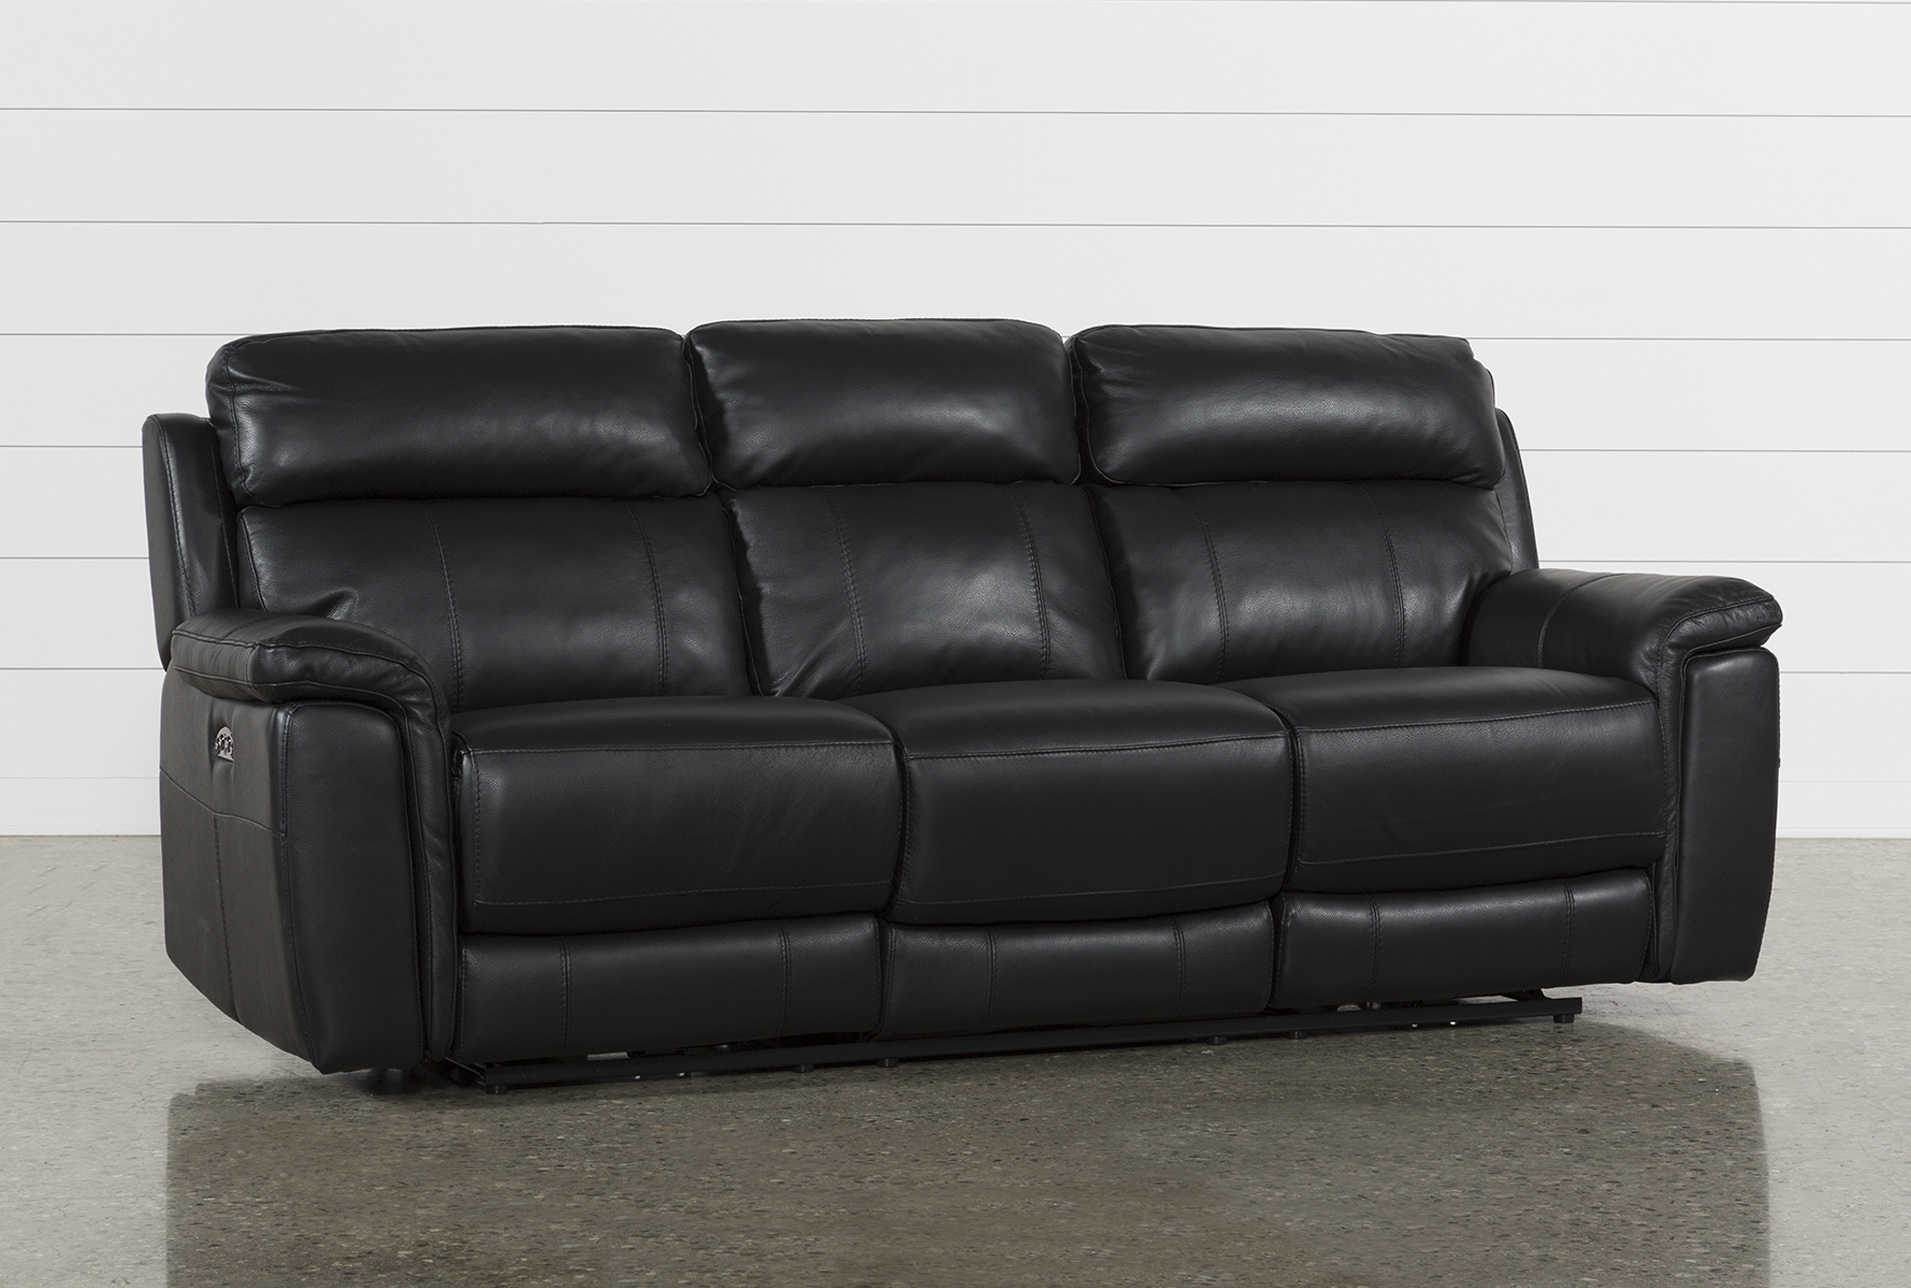 Dino Black Leather Power Reclining Sofa W/Power Headrest U0026 Usb   360